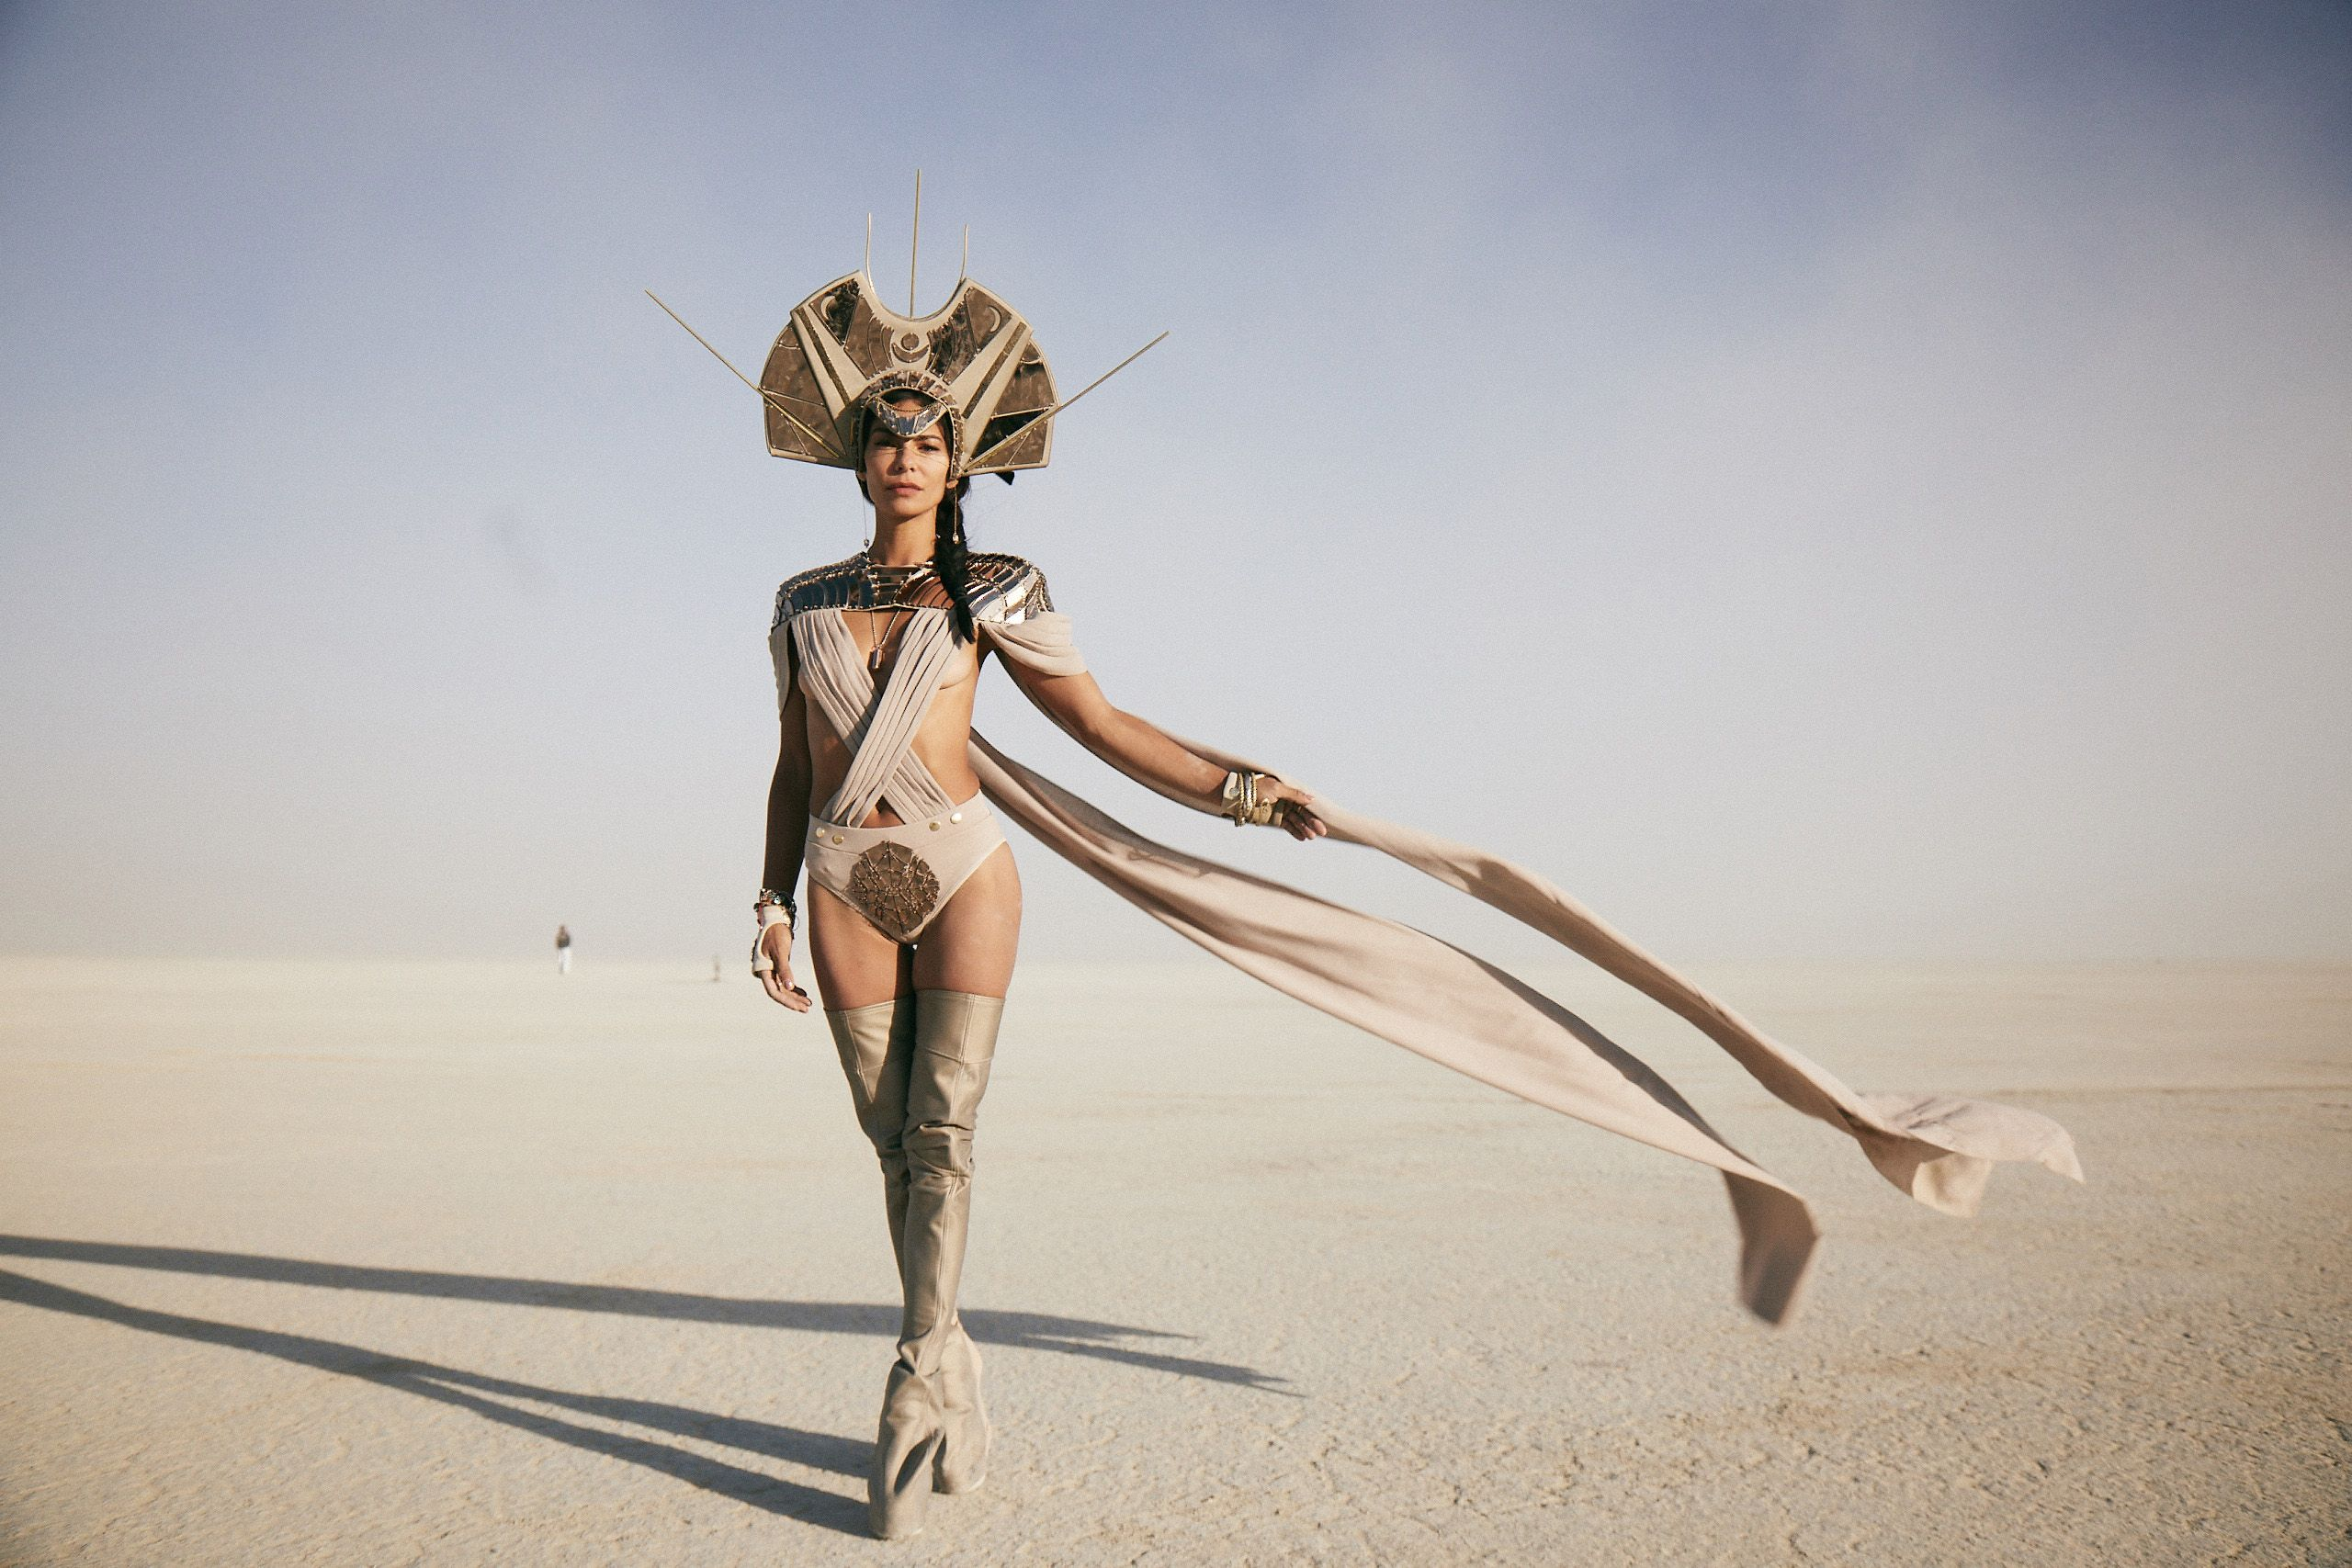 https://www.harpersbazaar.com/fashion/street-style/g22998209/burning-man-2018/